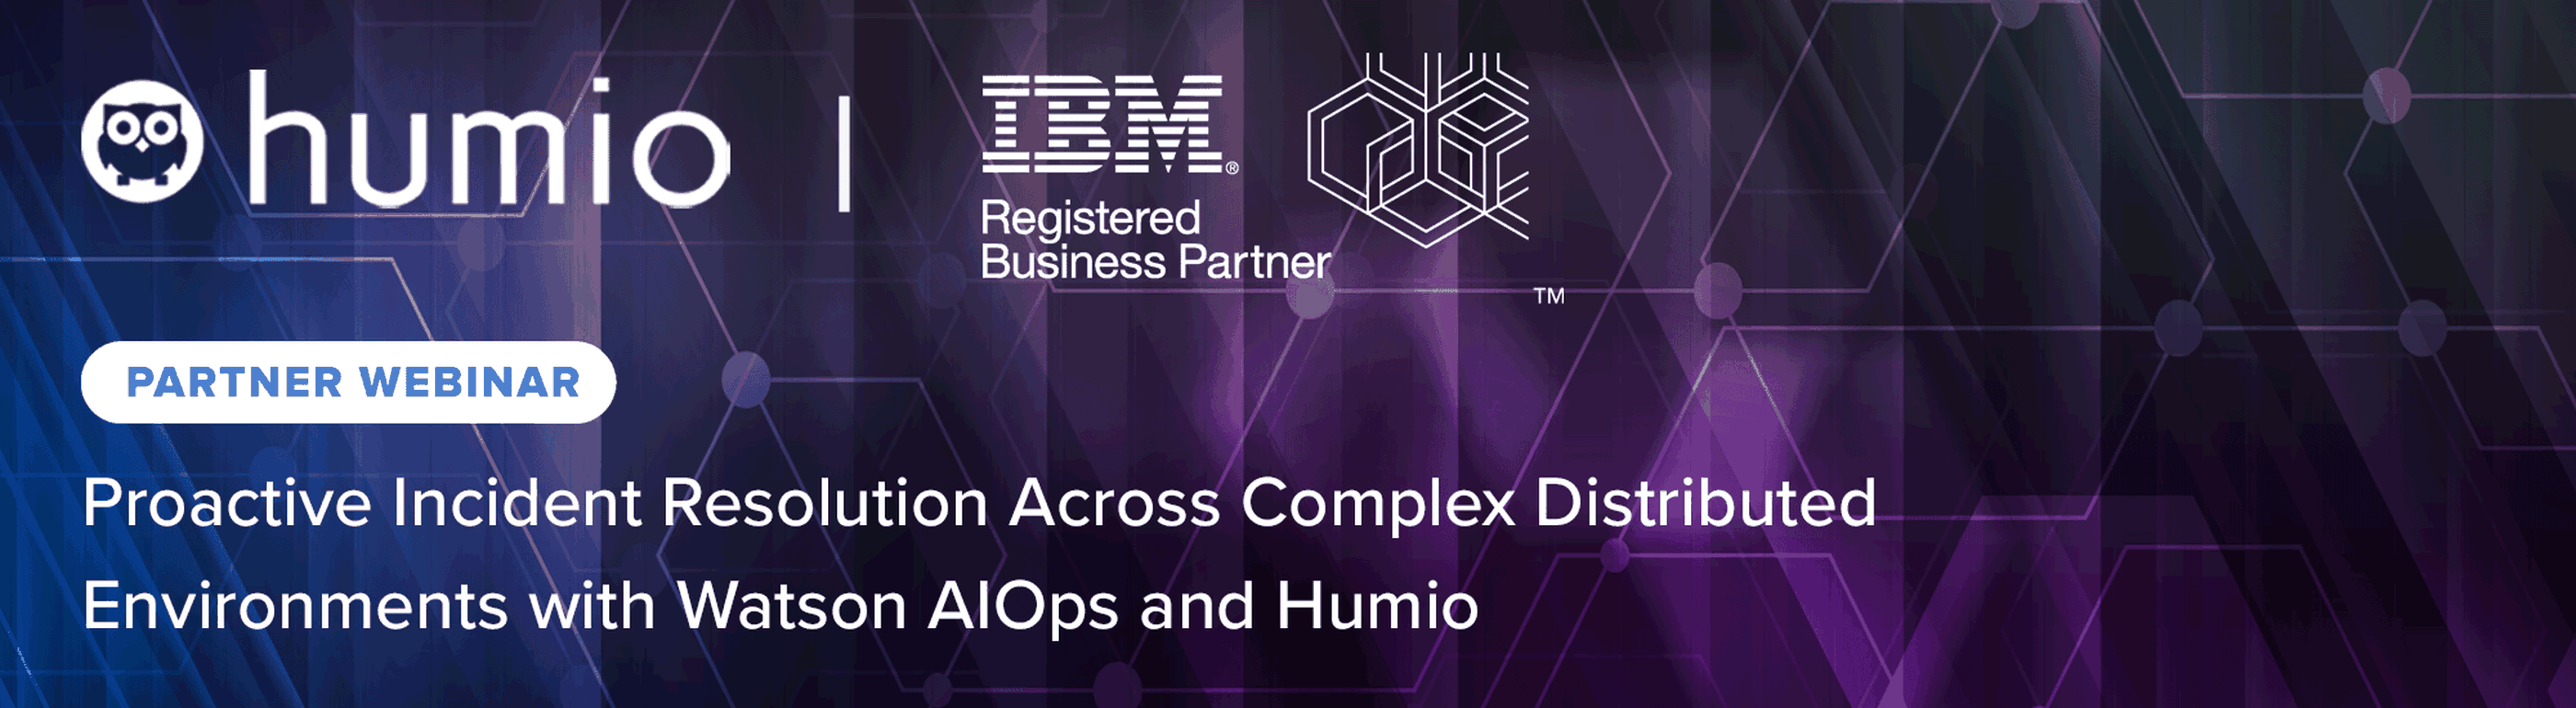 Proactive Incident Resolution Across Complex Distributed Environments with Watson AIOps and Humio